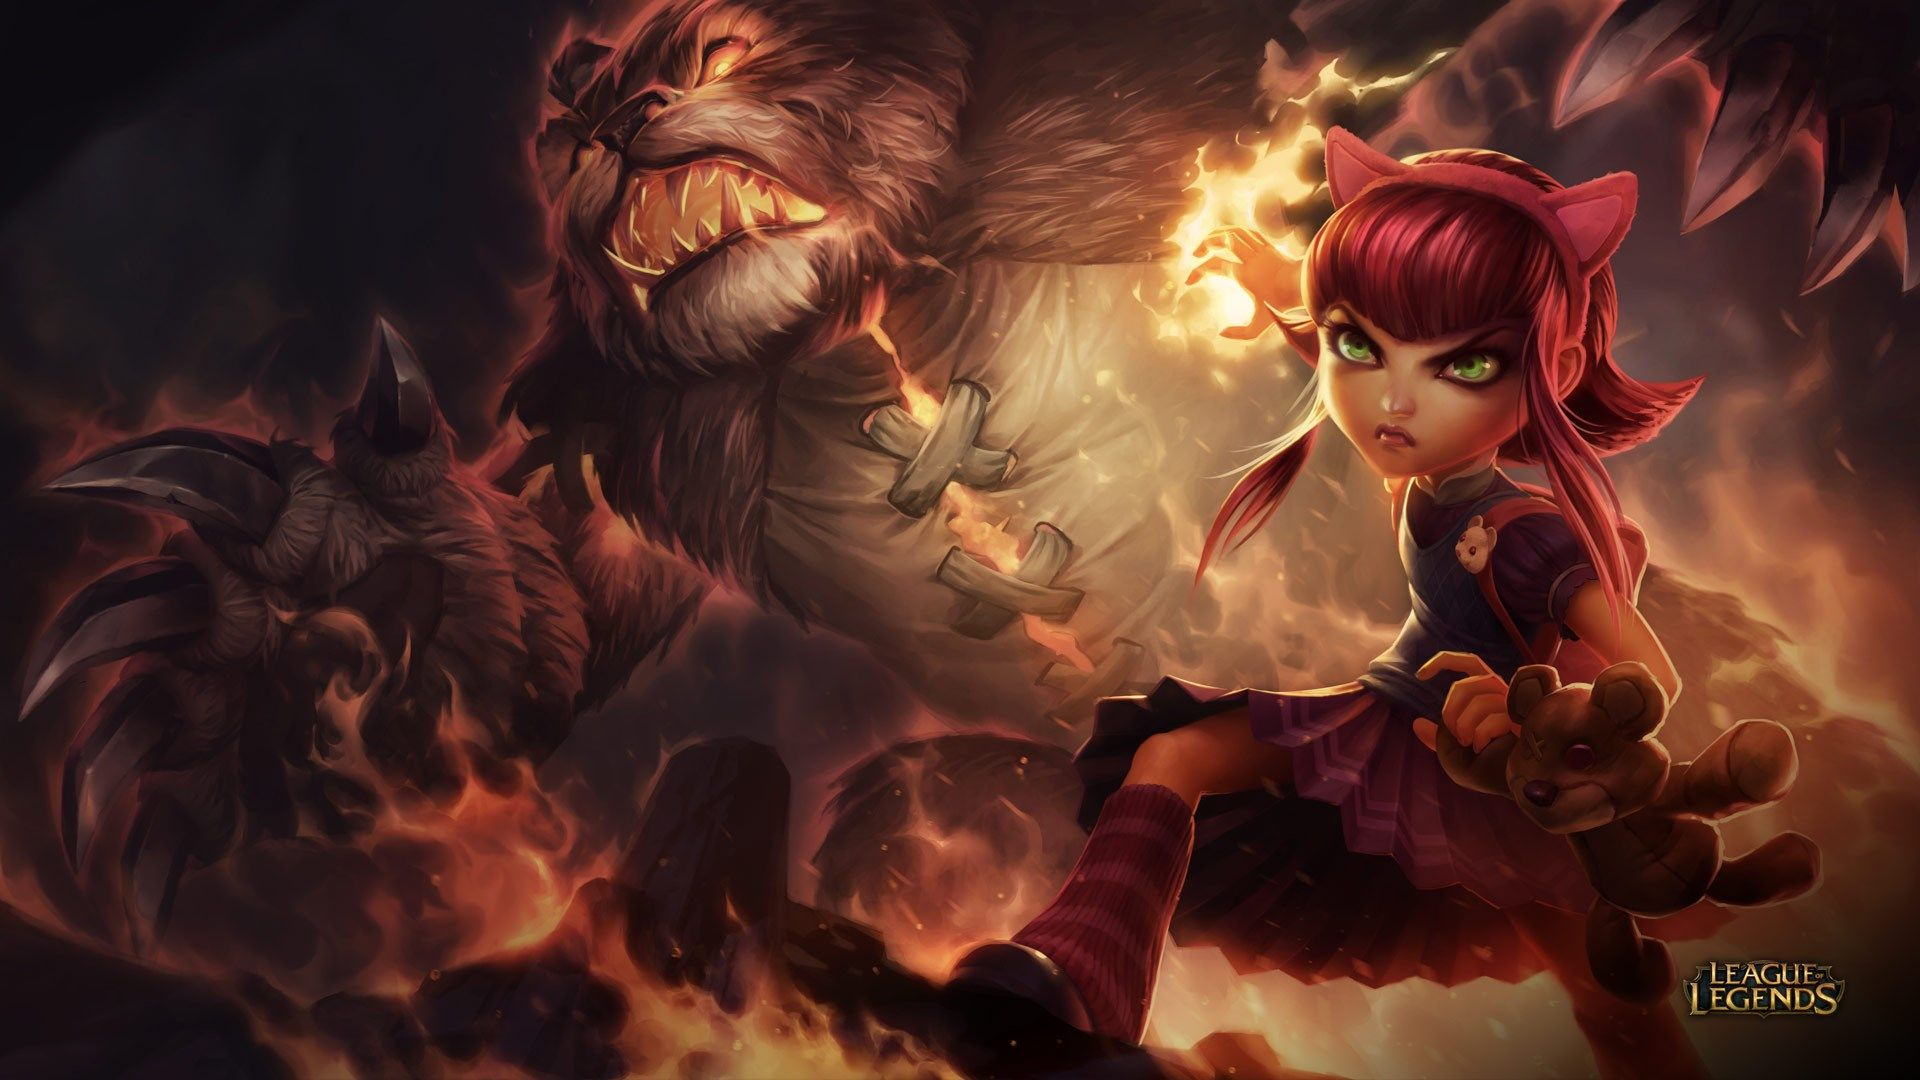 League Of Legends Wallpaper Pack 1080p Hd In 2019 Annie